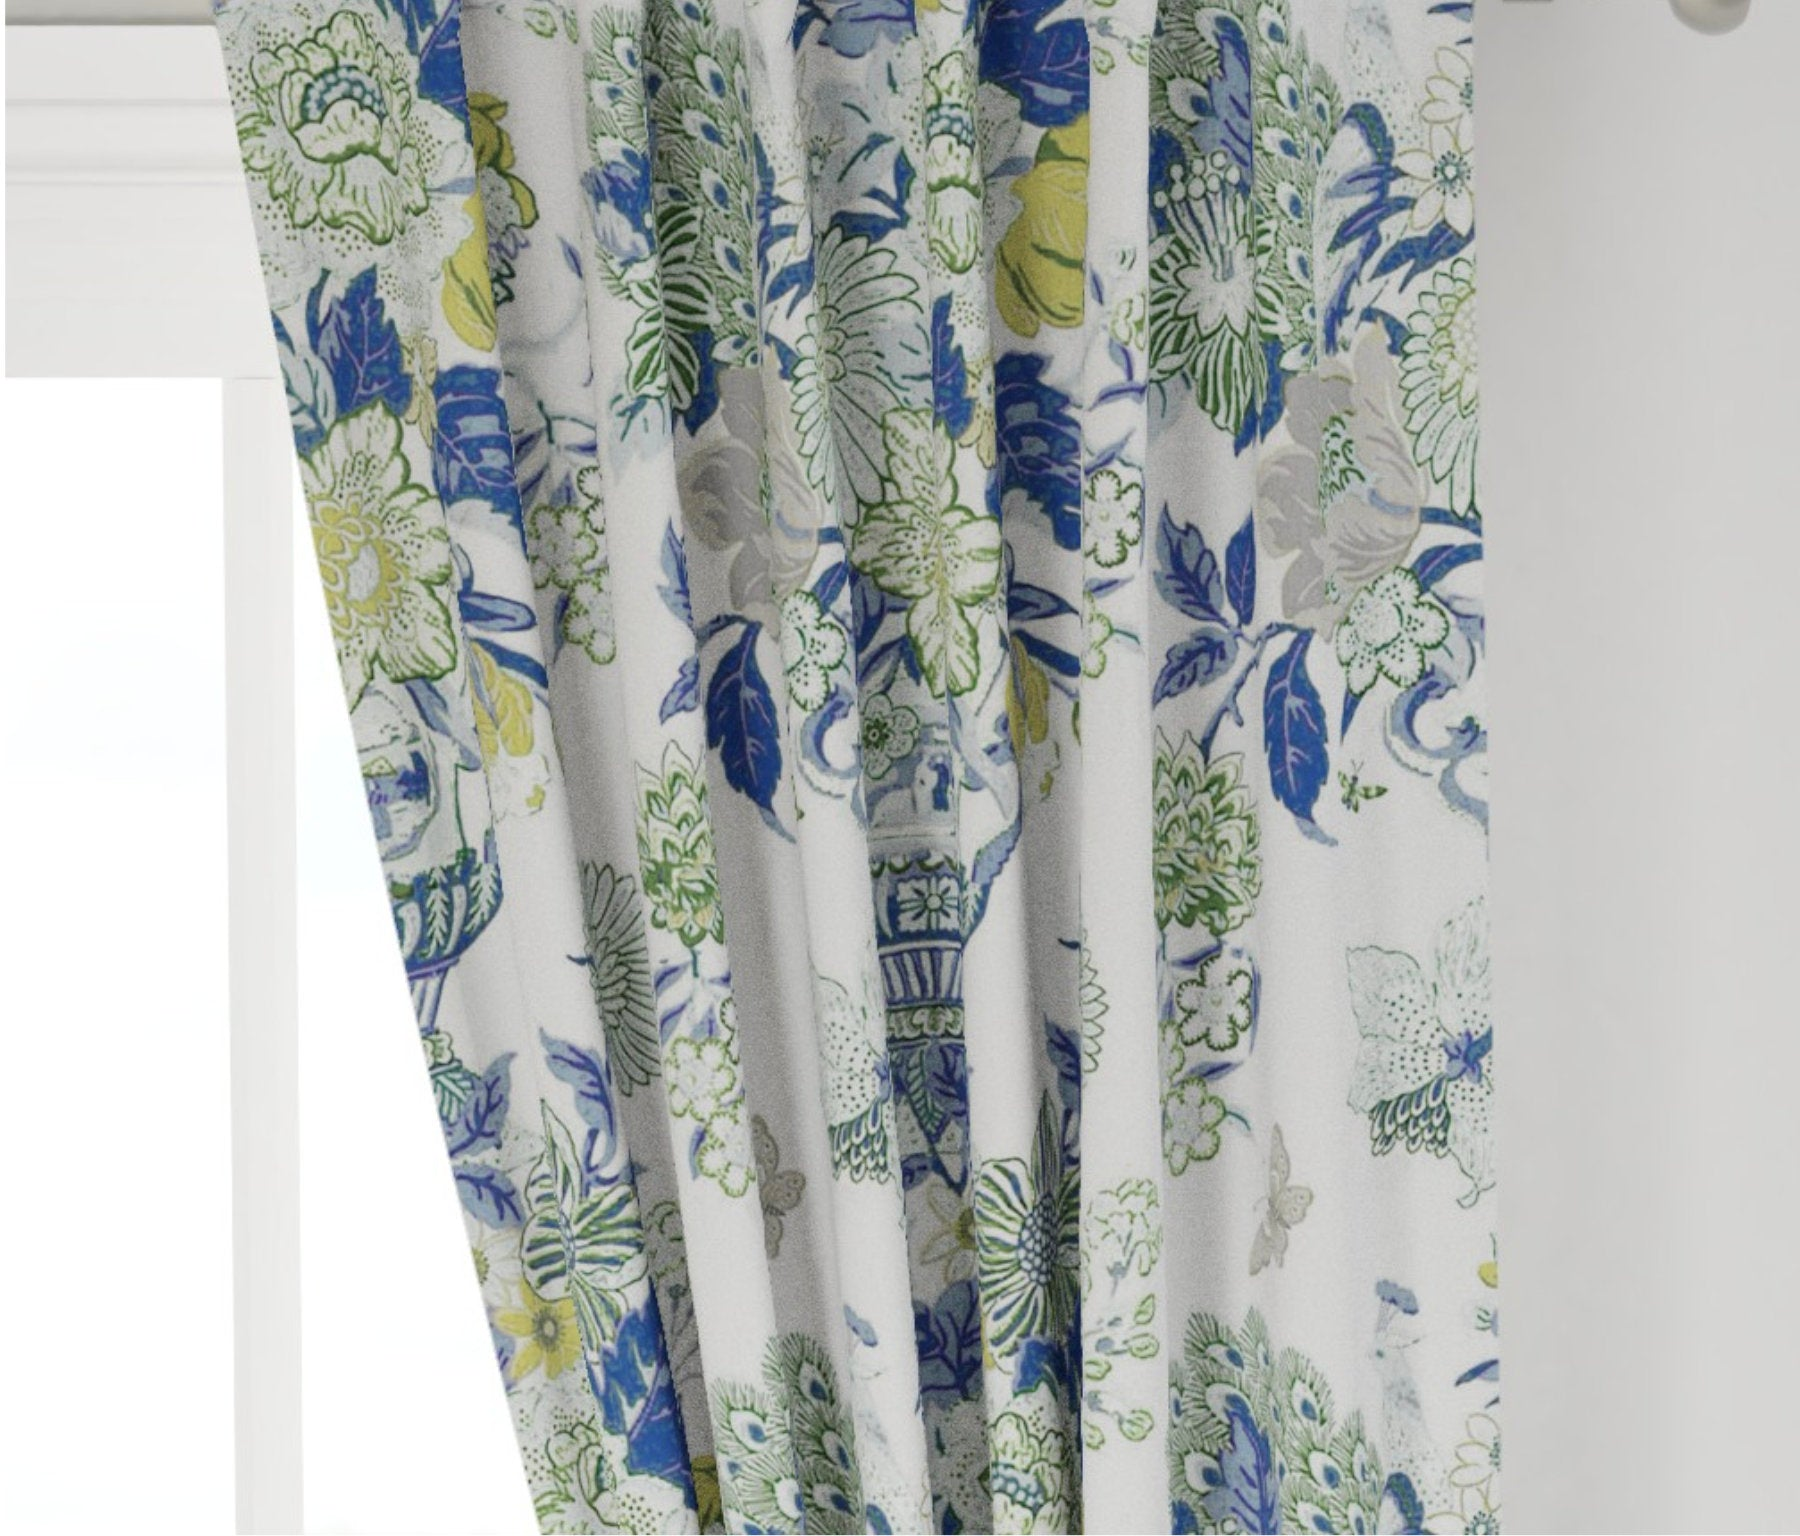 Blue Green Curtains Blue Green Floral Vase Large Floral Curtain Custom Jll Home